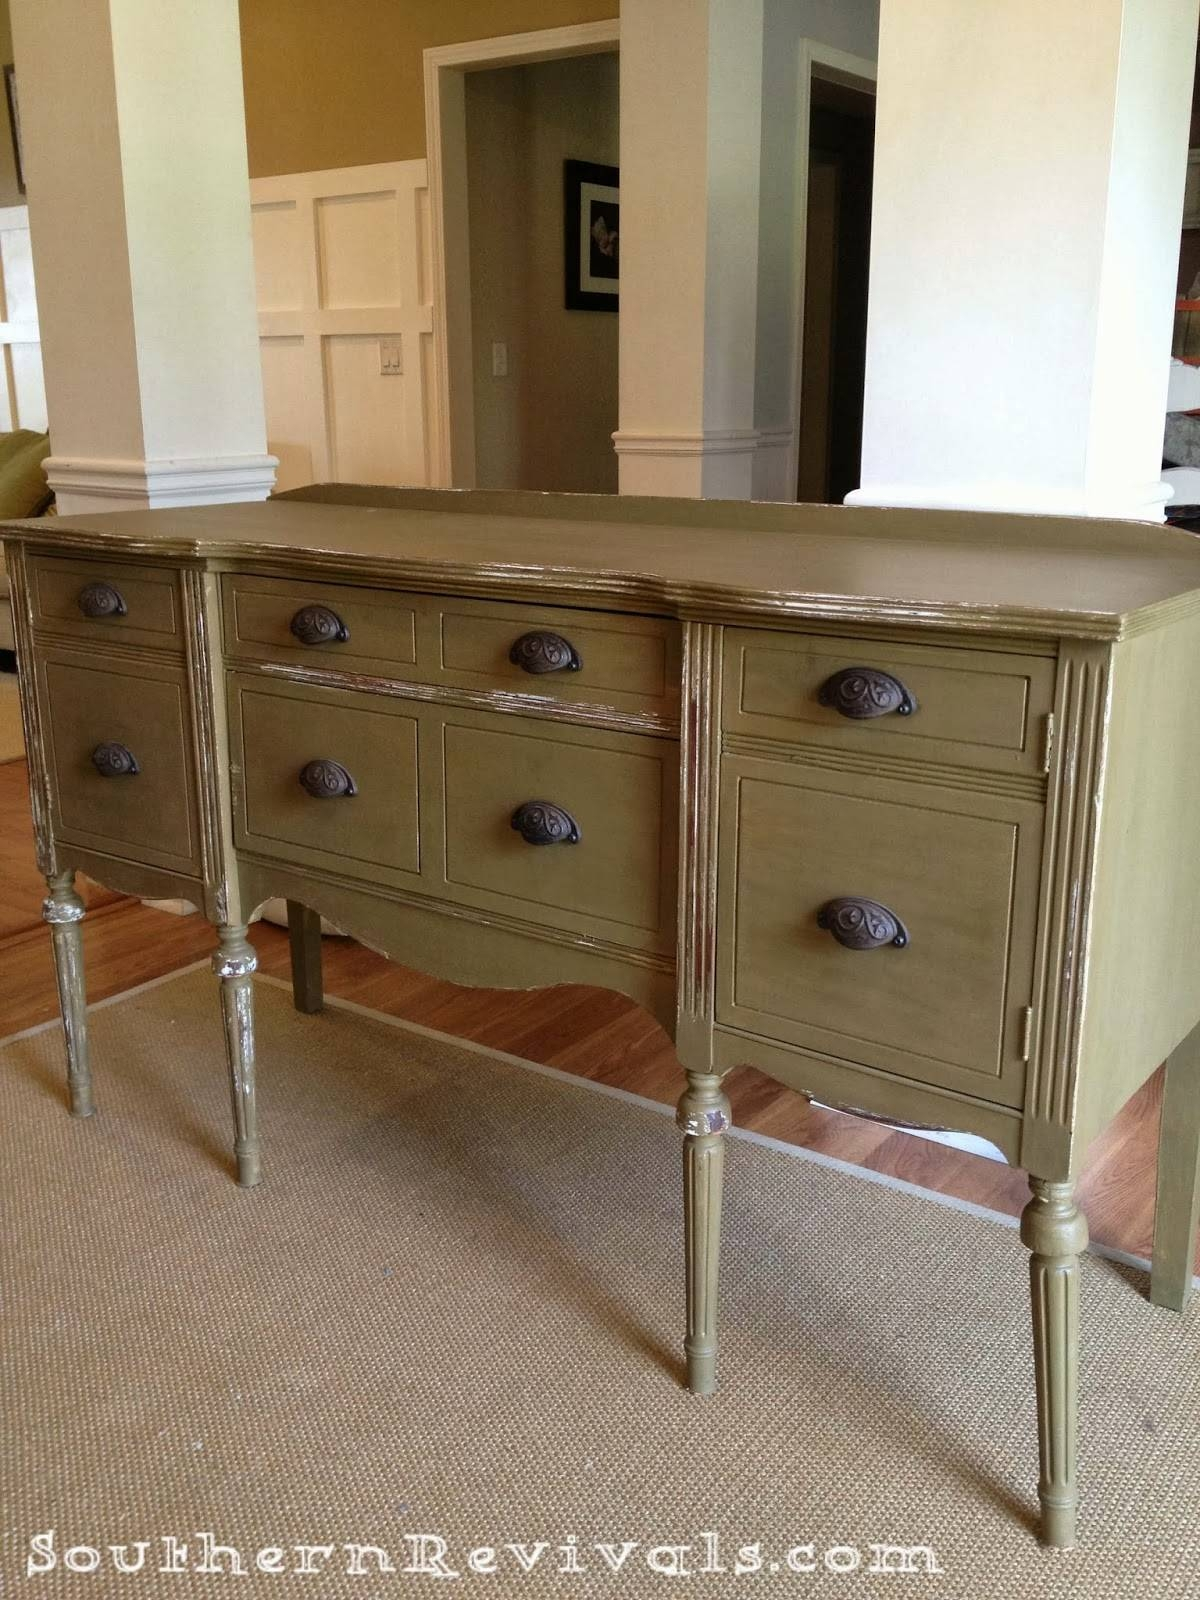 New Rustic Sideboards And Buffets   Bjdgjy For Rustic Sideboards Buffets (Photo 7 of 15)